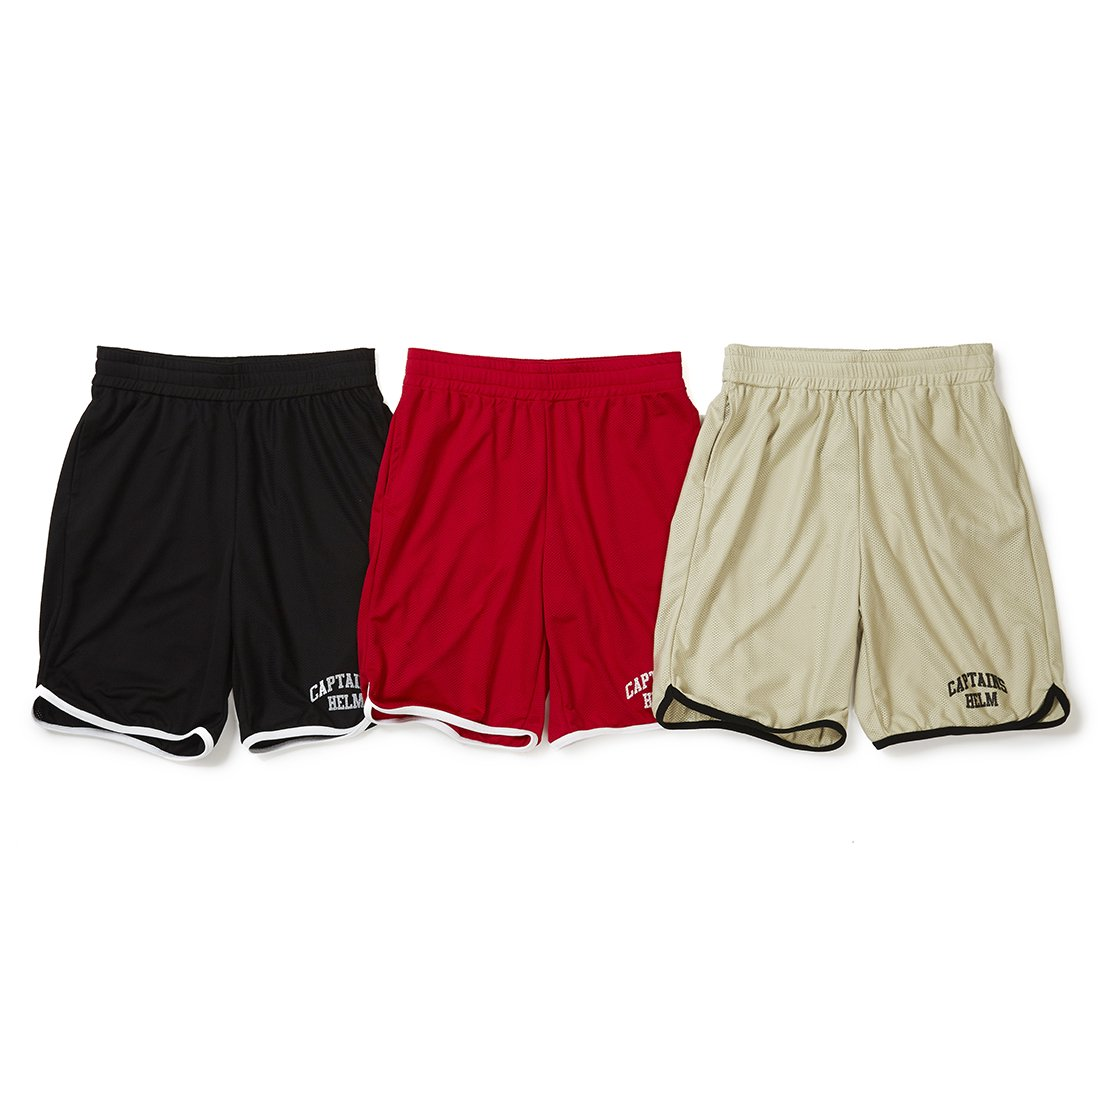 CAPTAINS HELM #MESH SHORTS